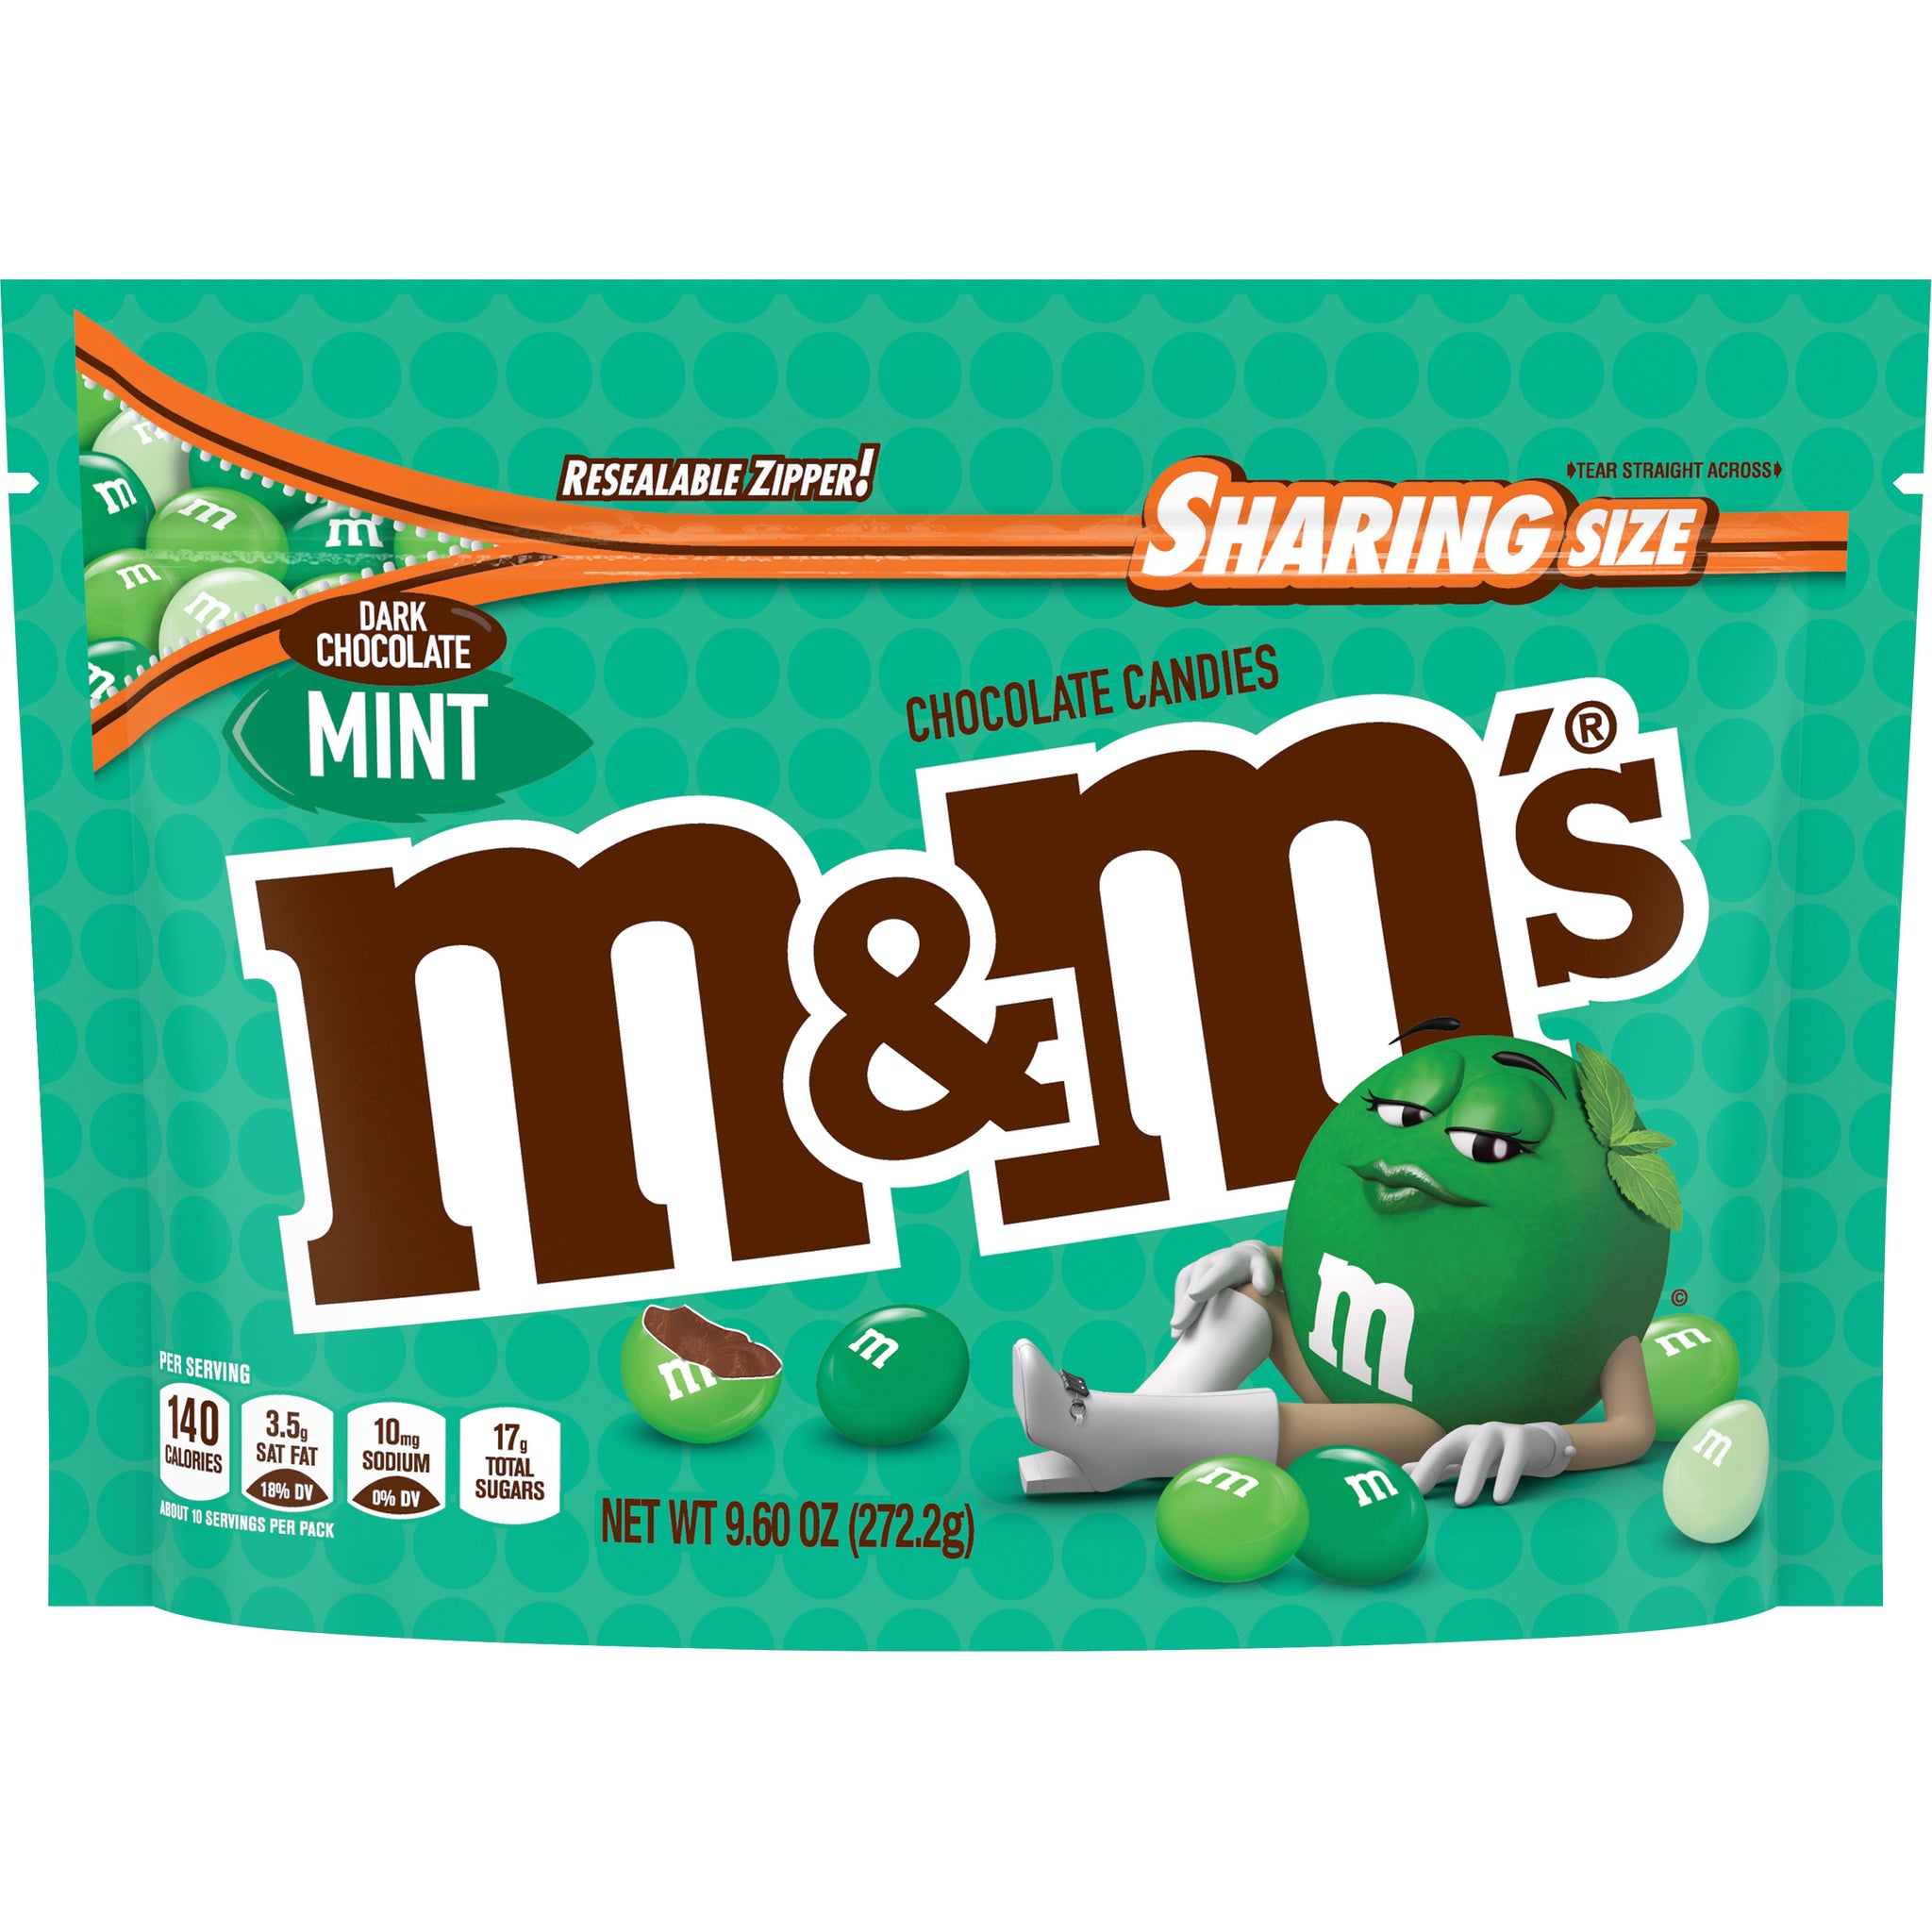 M&M'S Mint Dark Chocolate Candy, Sharing Size, 9.6oz